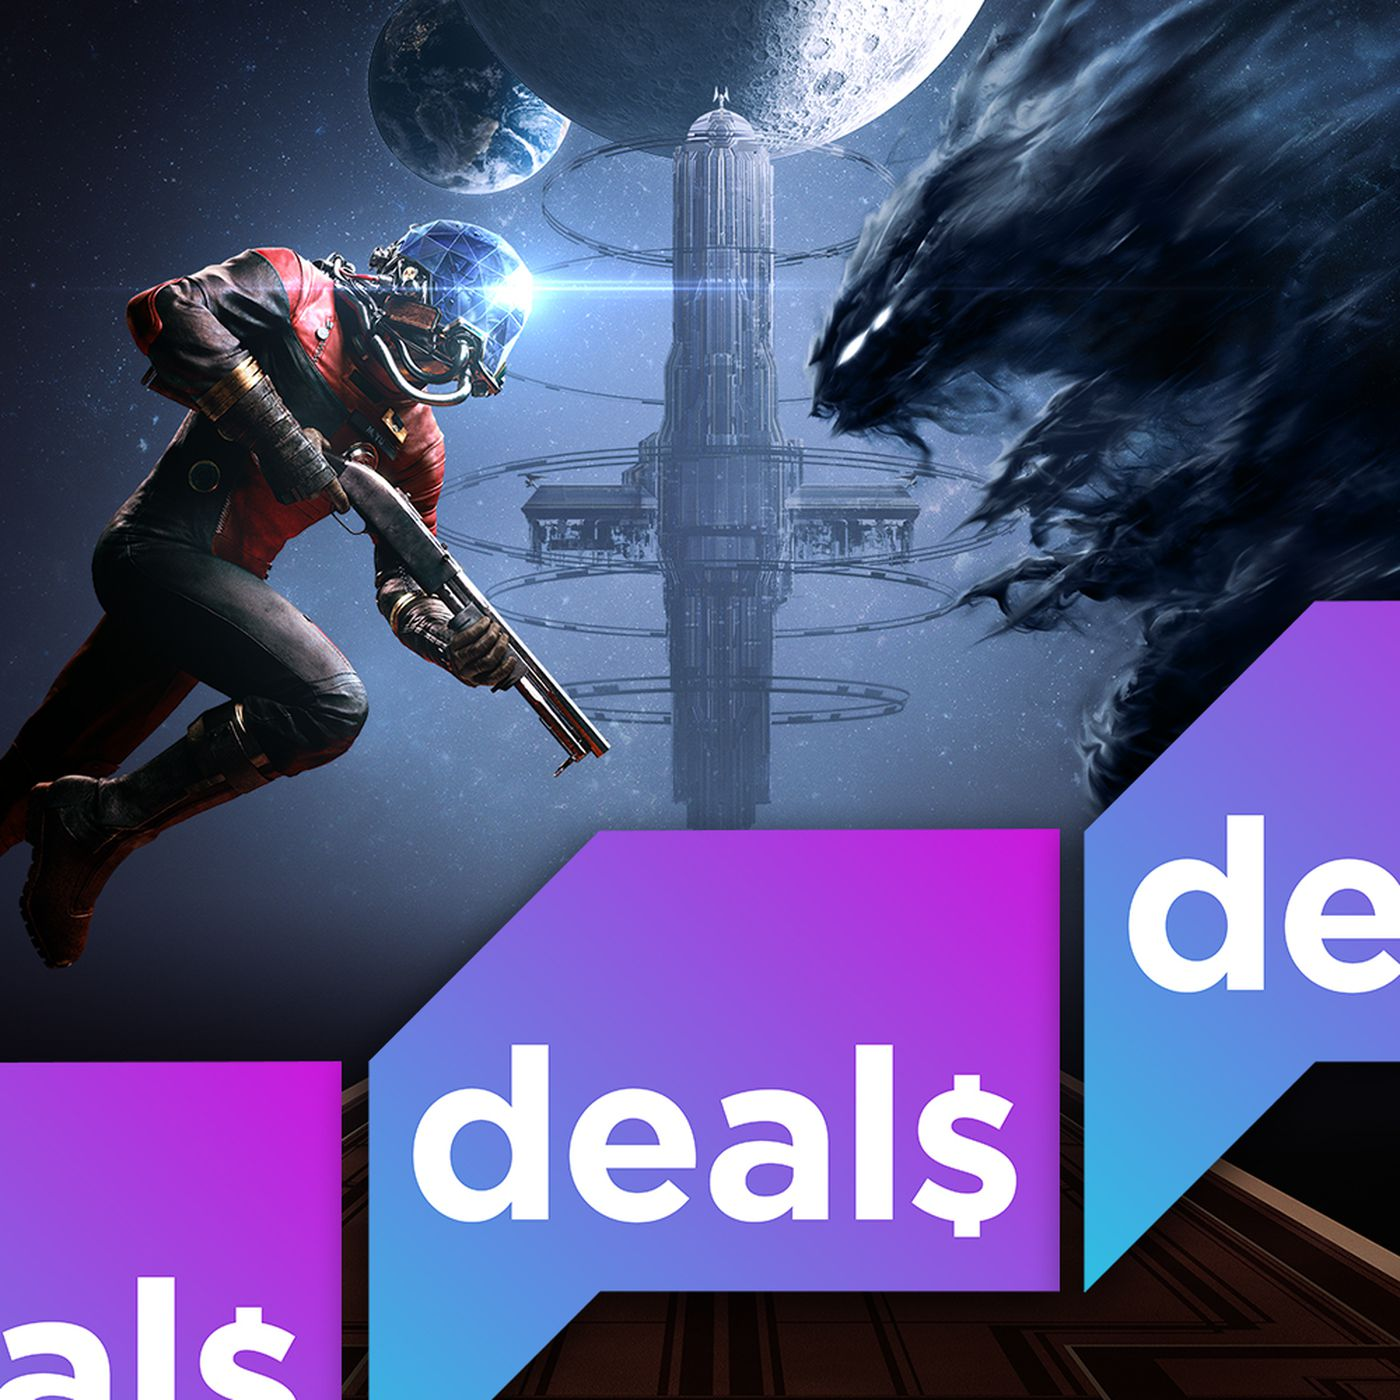 Xbox One S console discounts, $35 off Prey, and more of the